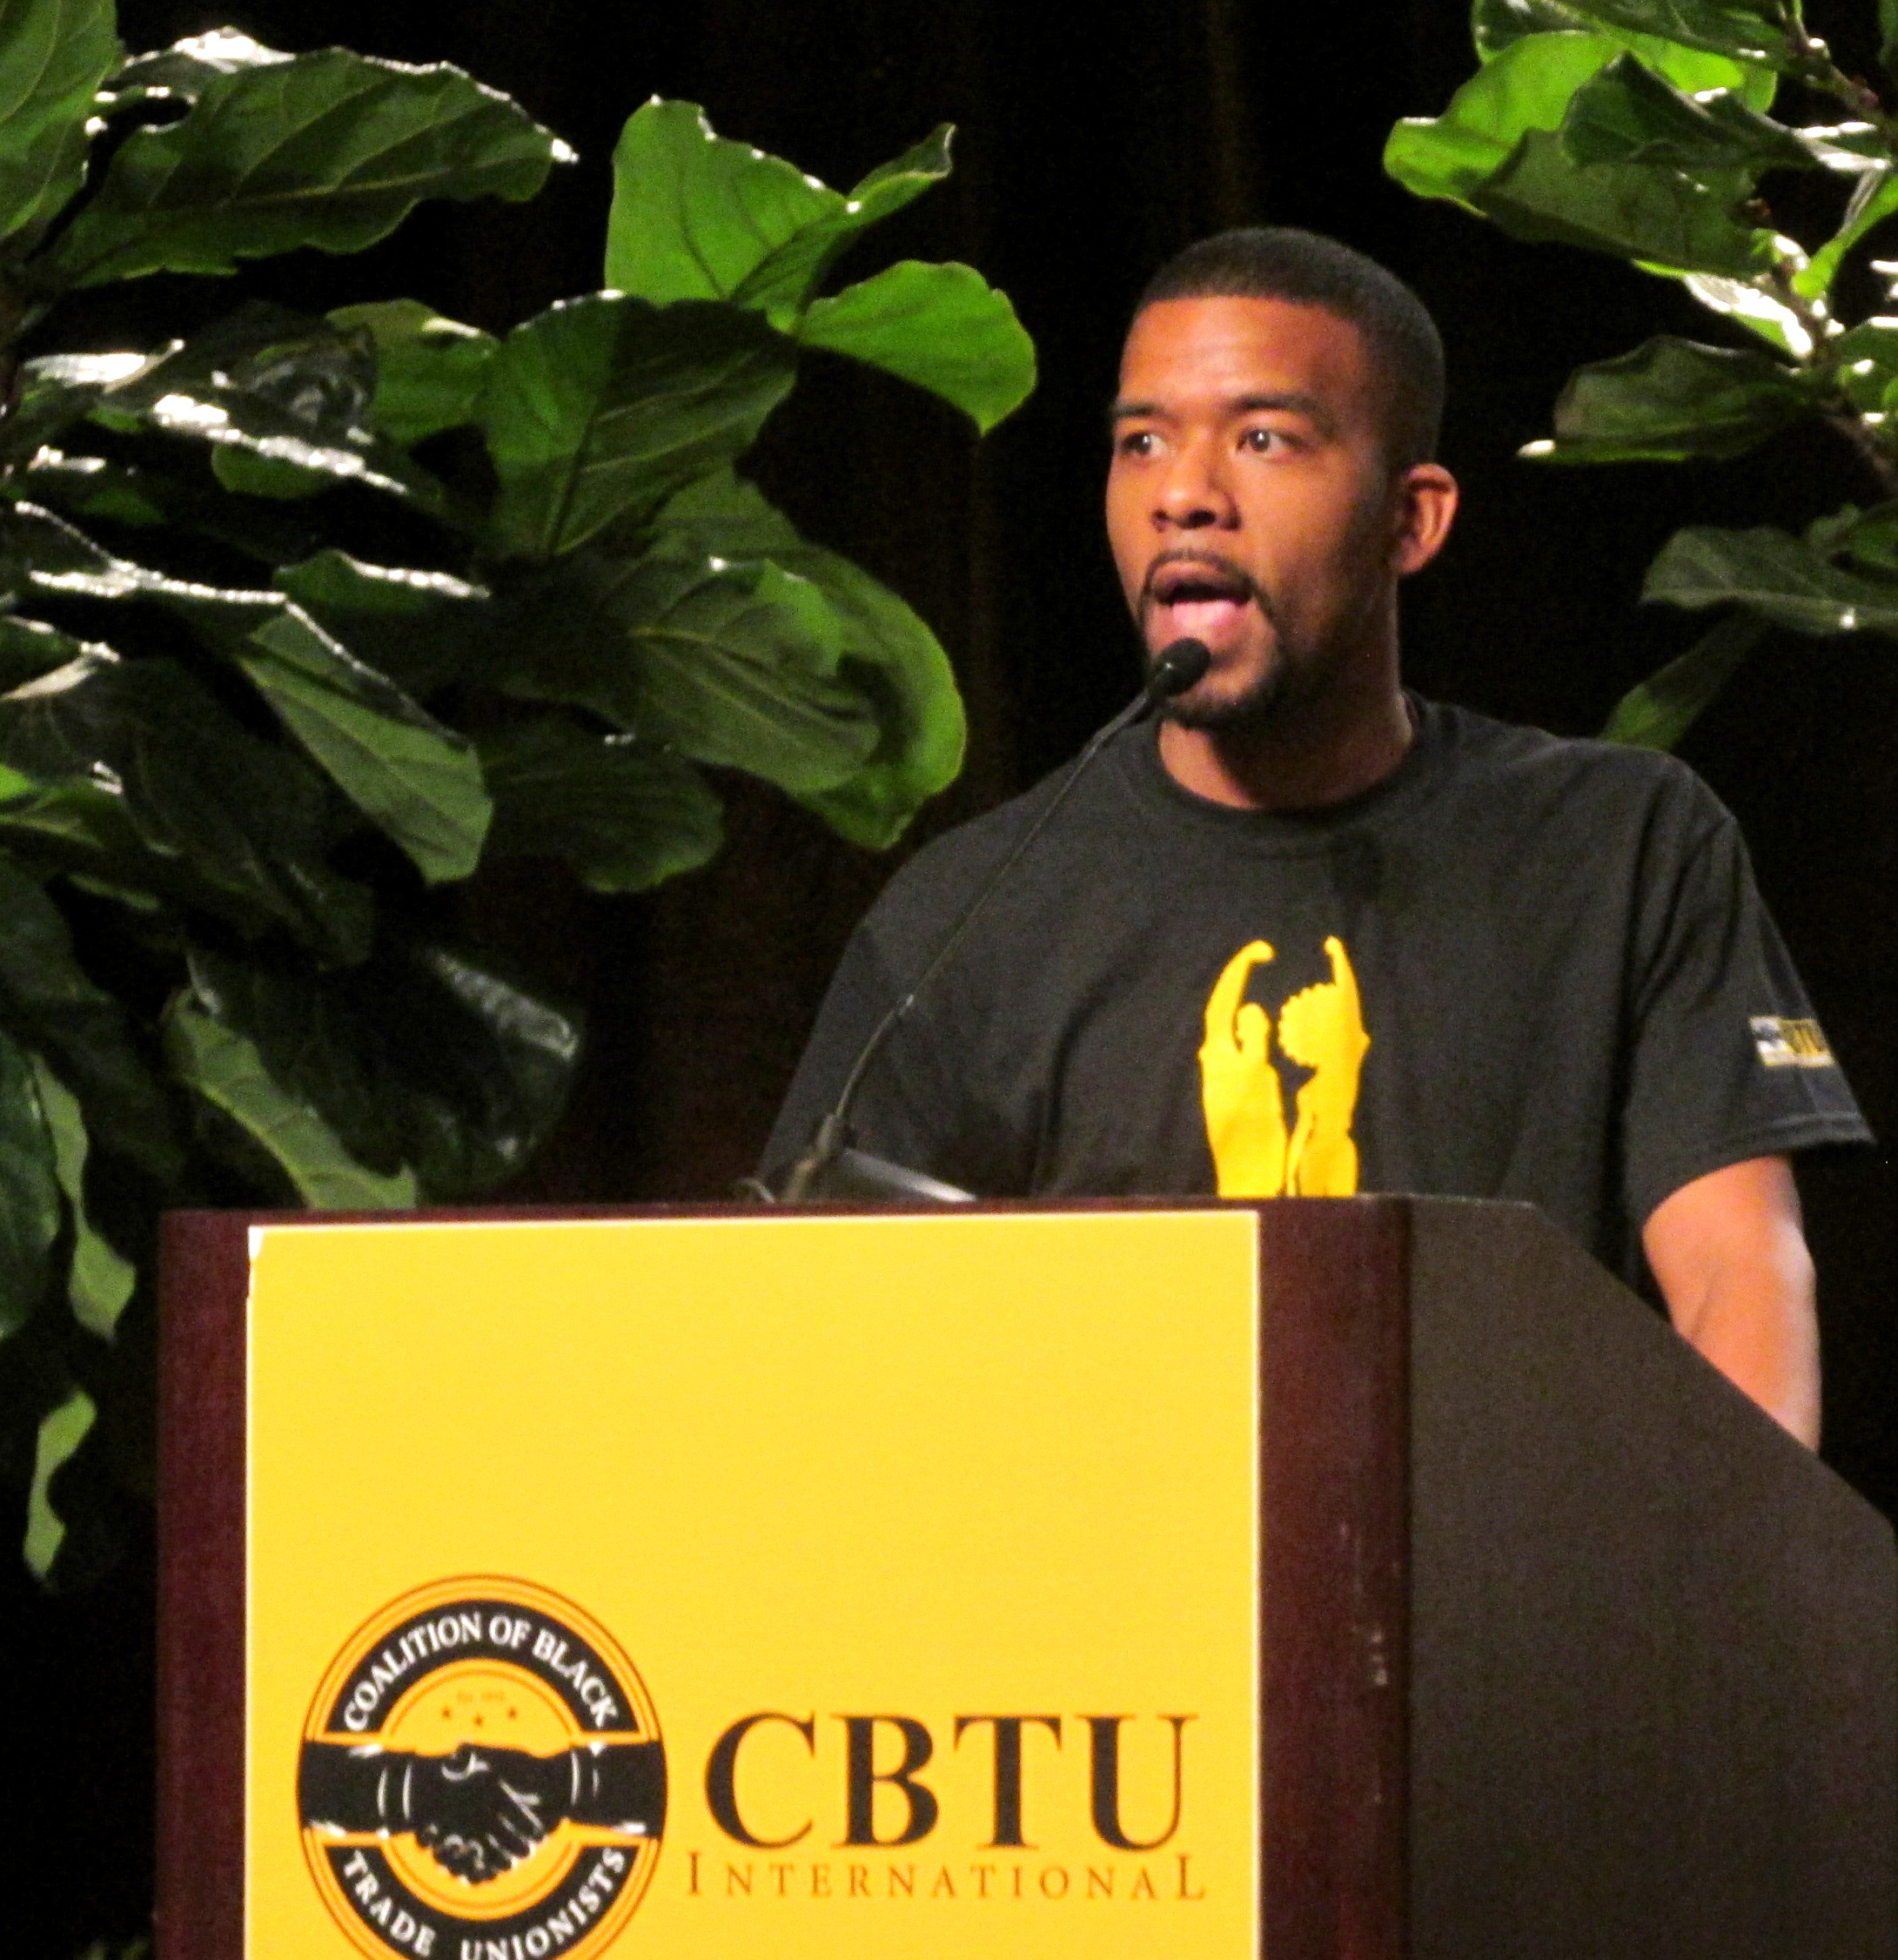 CBTU-Photo-2017-Convention-young-brother-at-podium